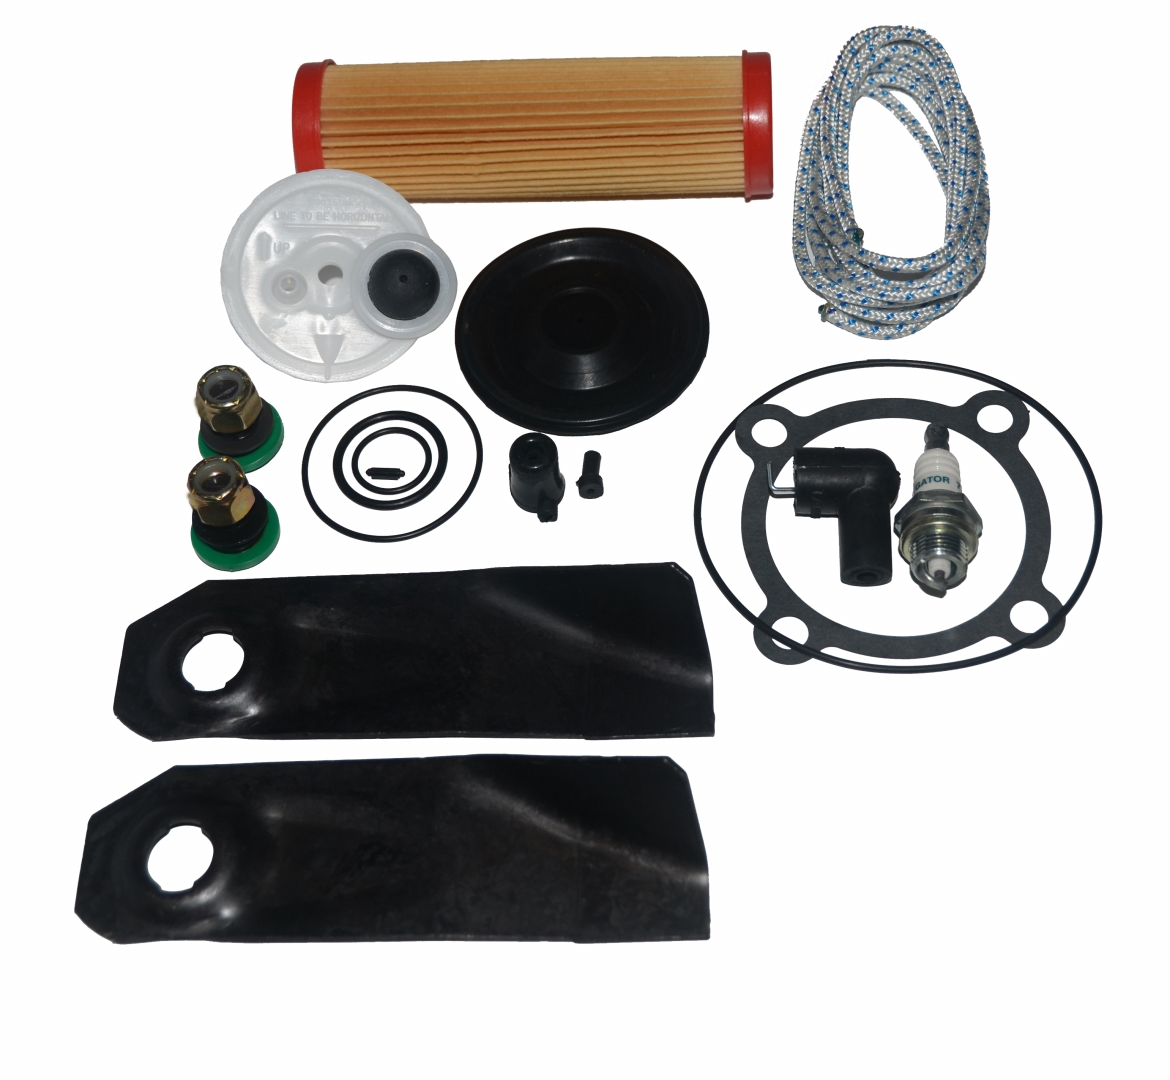 Victa 2 Stroke Service Kit With Diaphragm Fuel Line and Tap